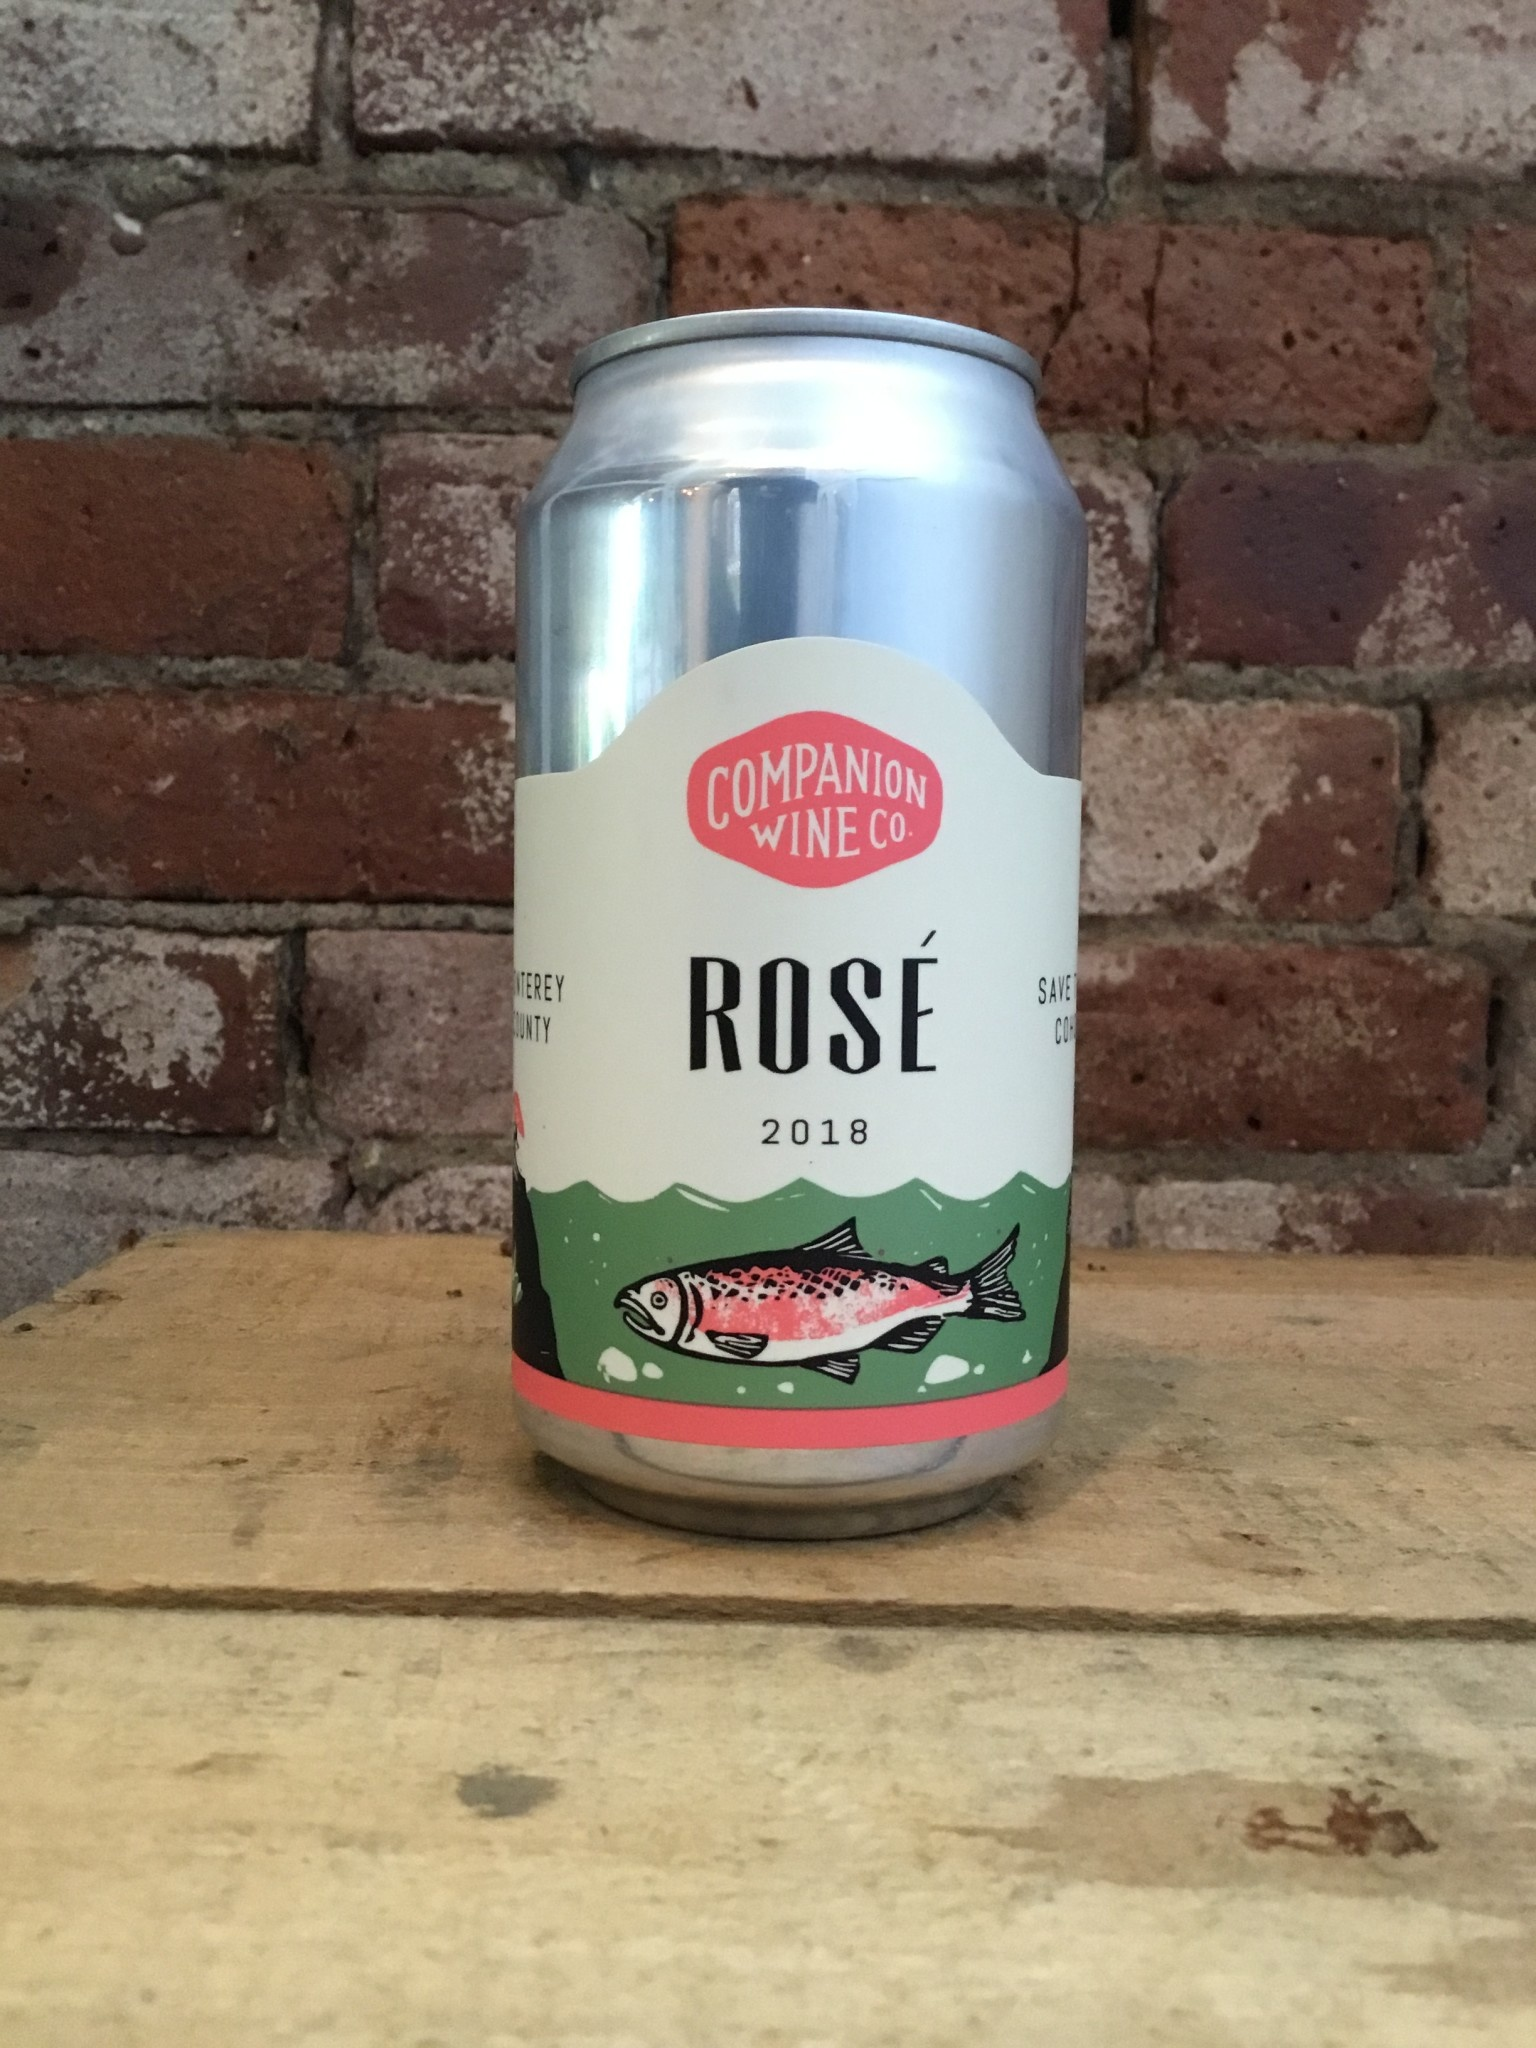 2018 Companion Wine Co. Rose, 375ml(CANS)